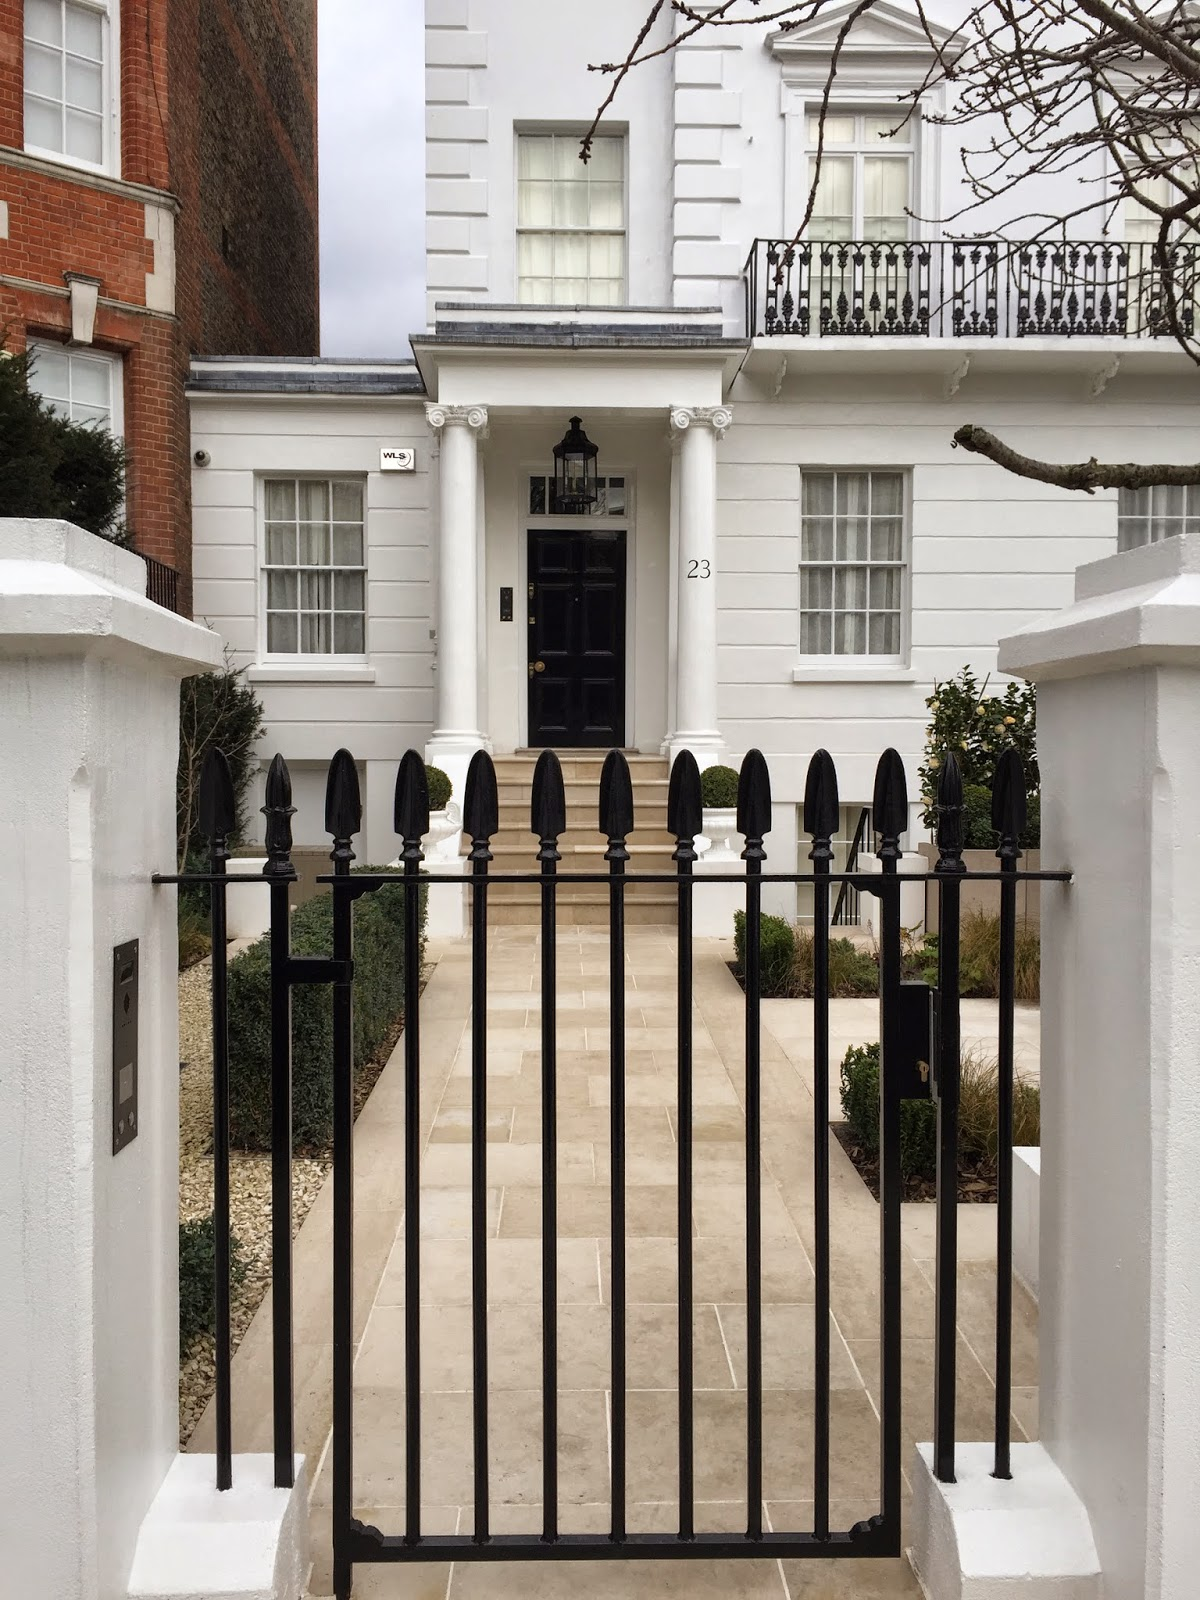 Caroline in kensington off to neverland with peter and for 23 egerton terrace kensington london